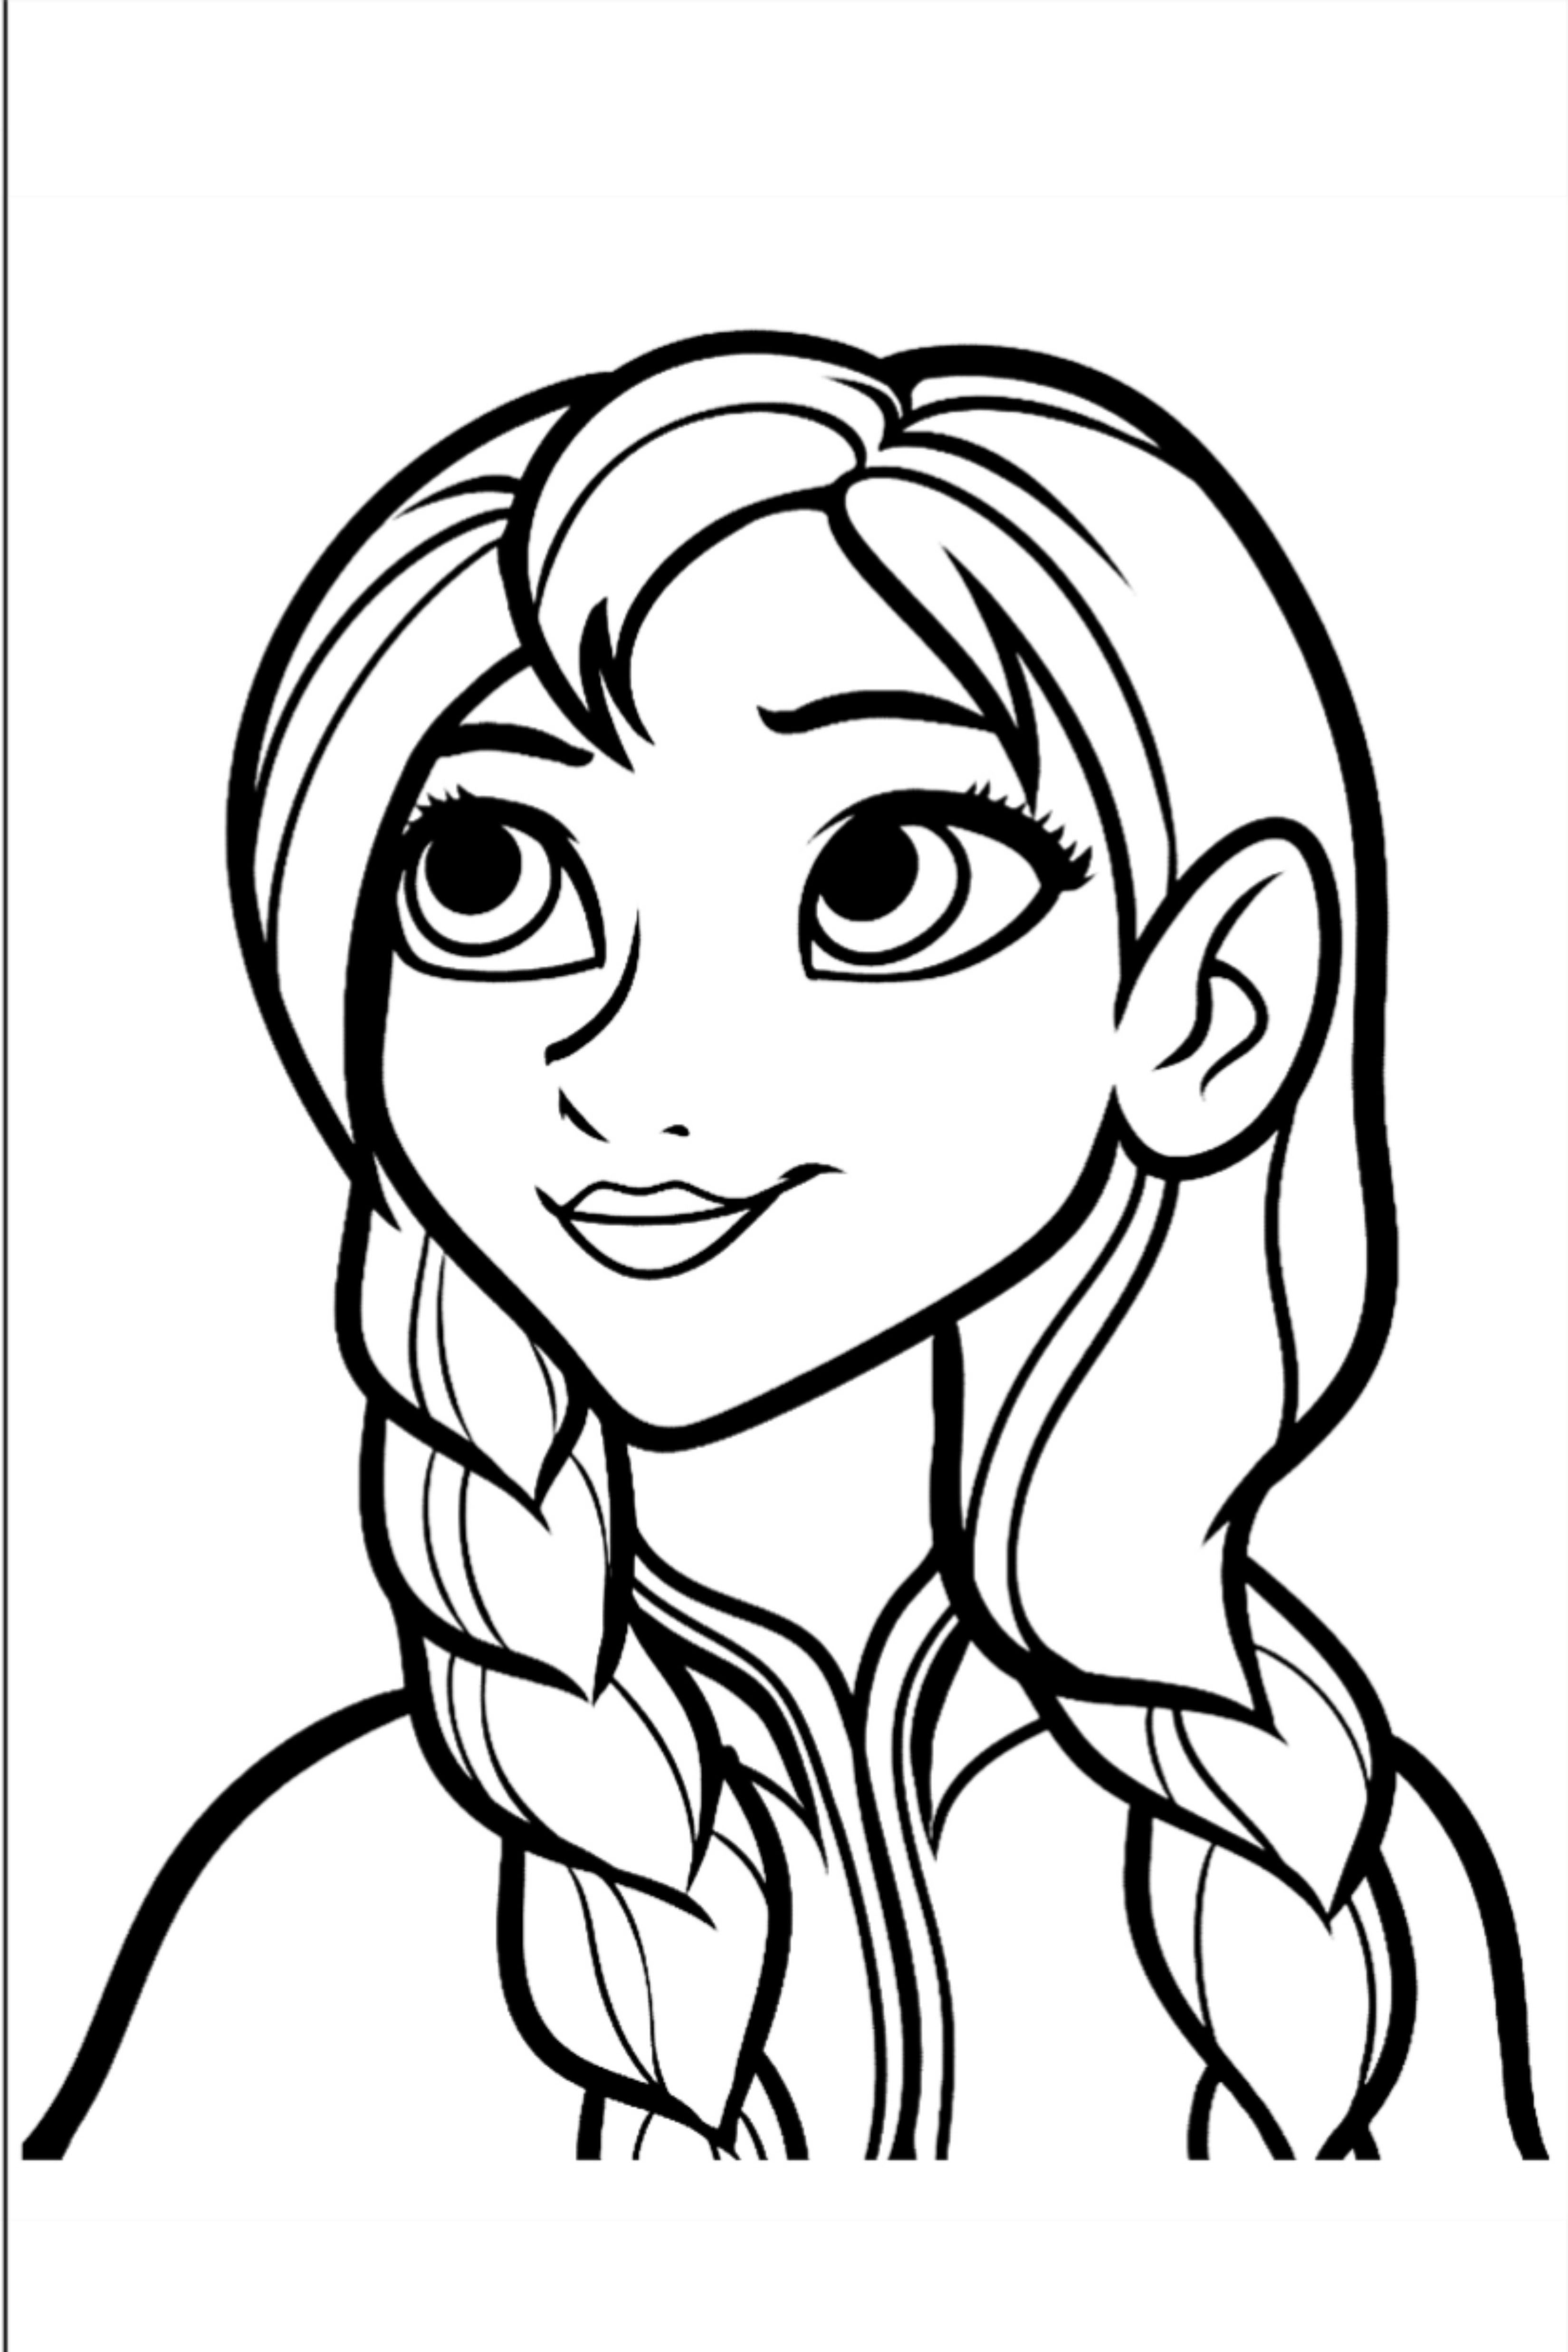 30 Elsa Princess Coloring Pages For Kids Elsa Coloring Pages Frozen Coloring Frozen Coloring Pages